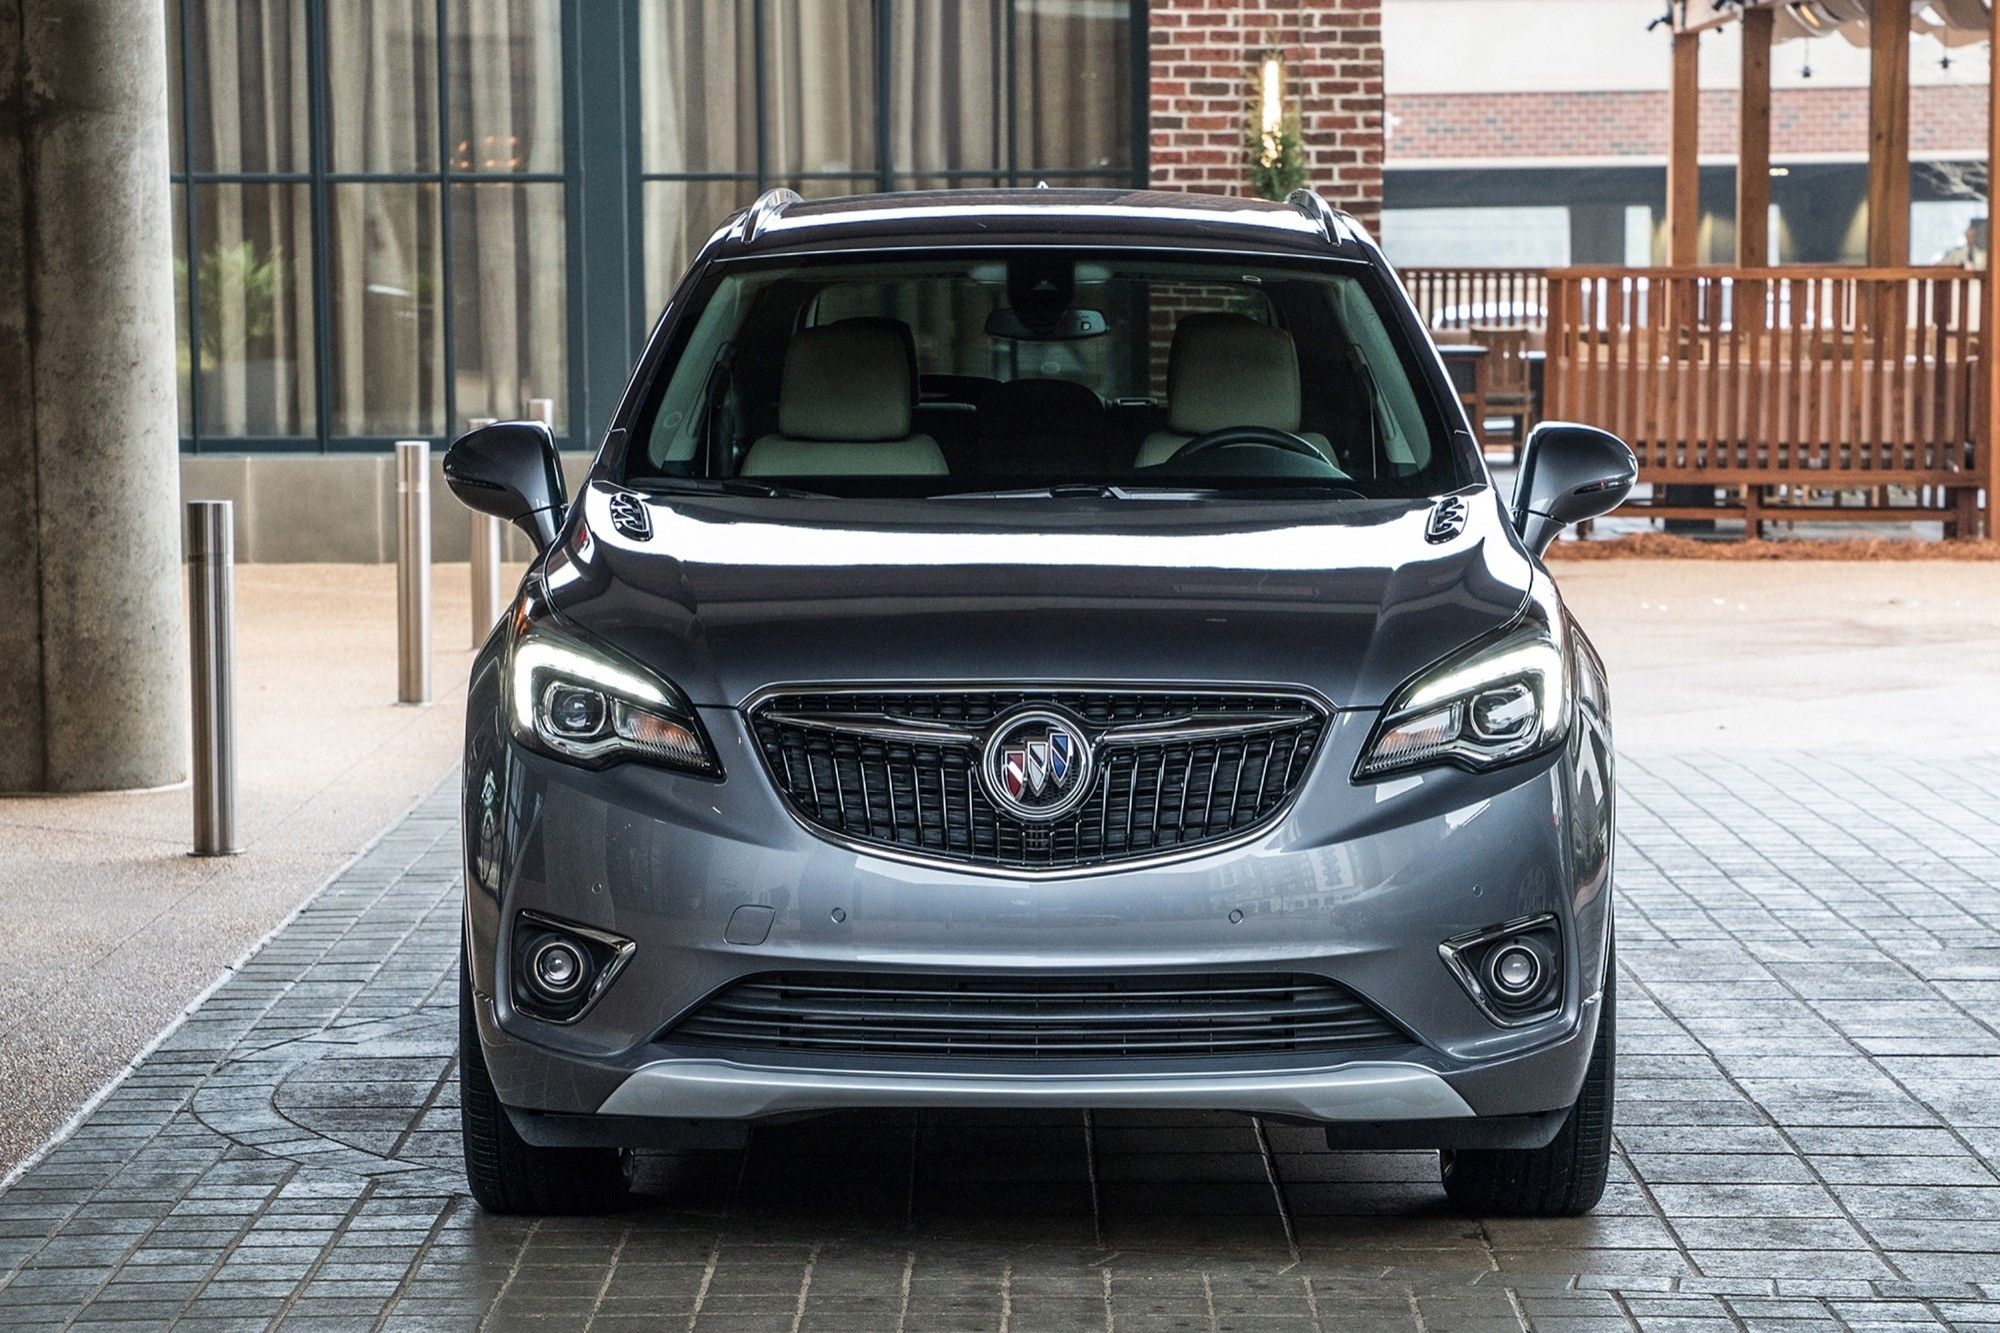 2020 Buick Envision Colors Review And Price Di 2020